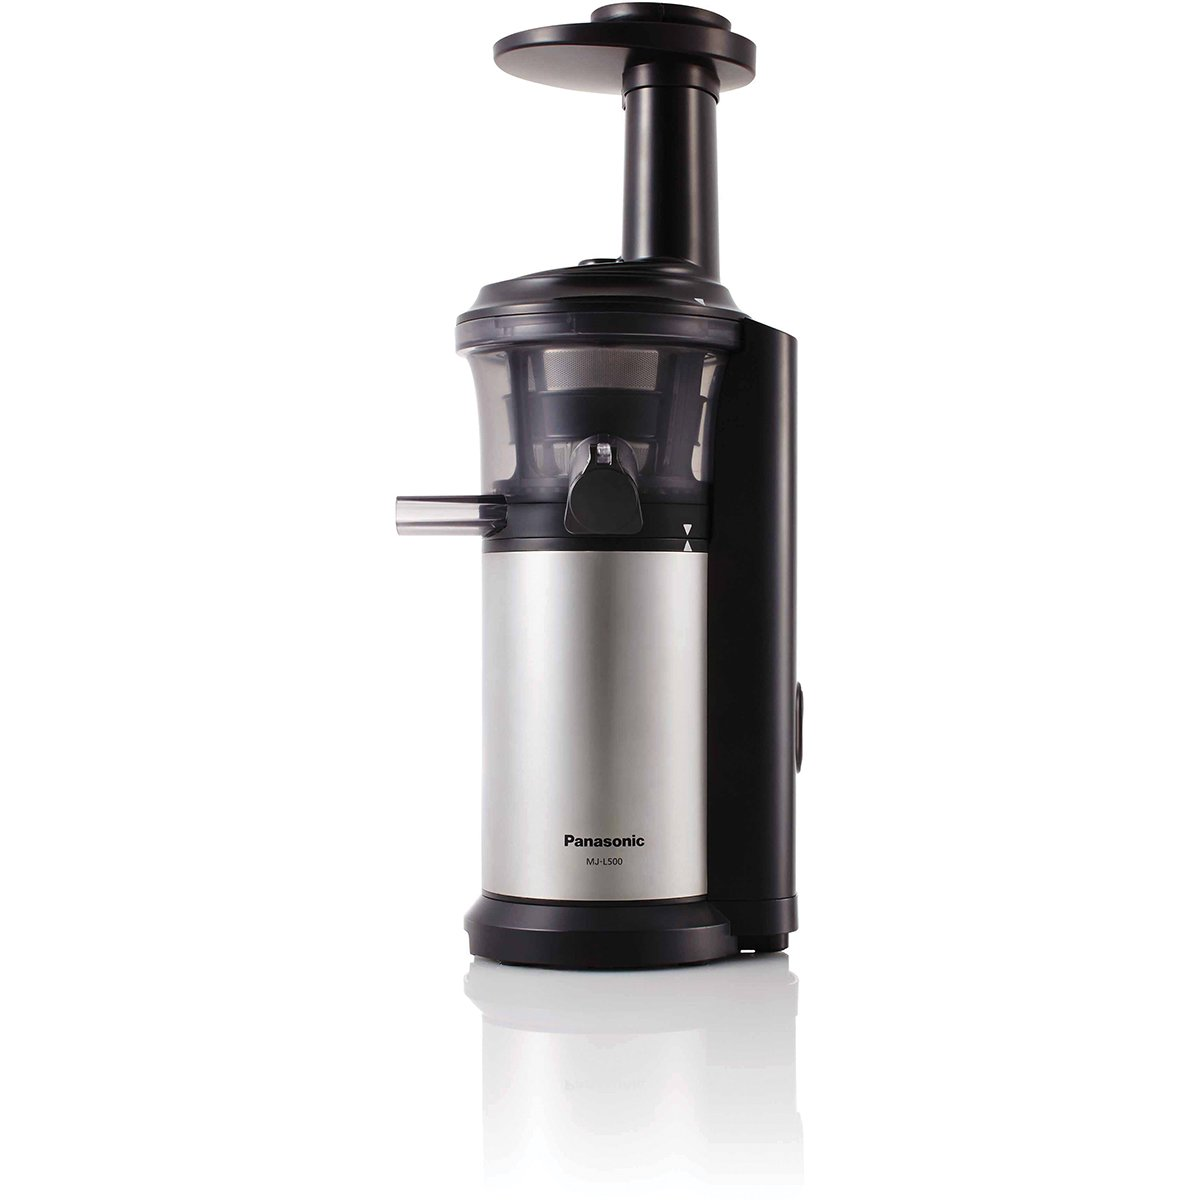 Panasonic MJ-L500SST Slow Juicer Appliances Online